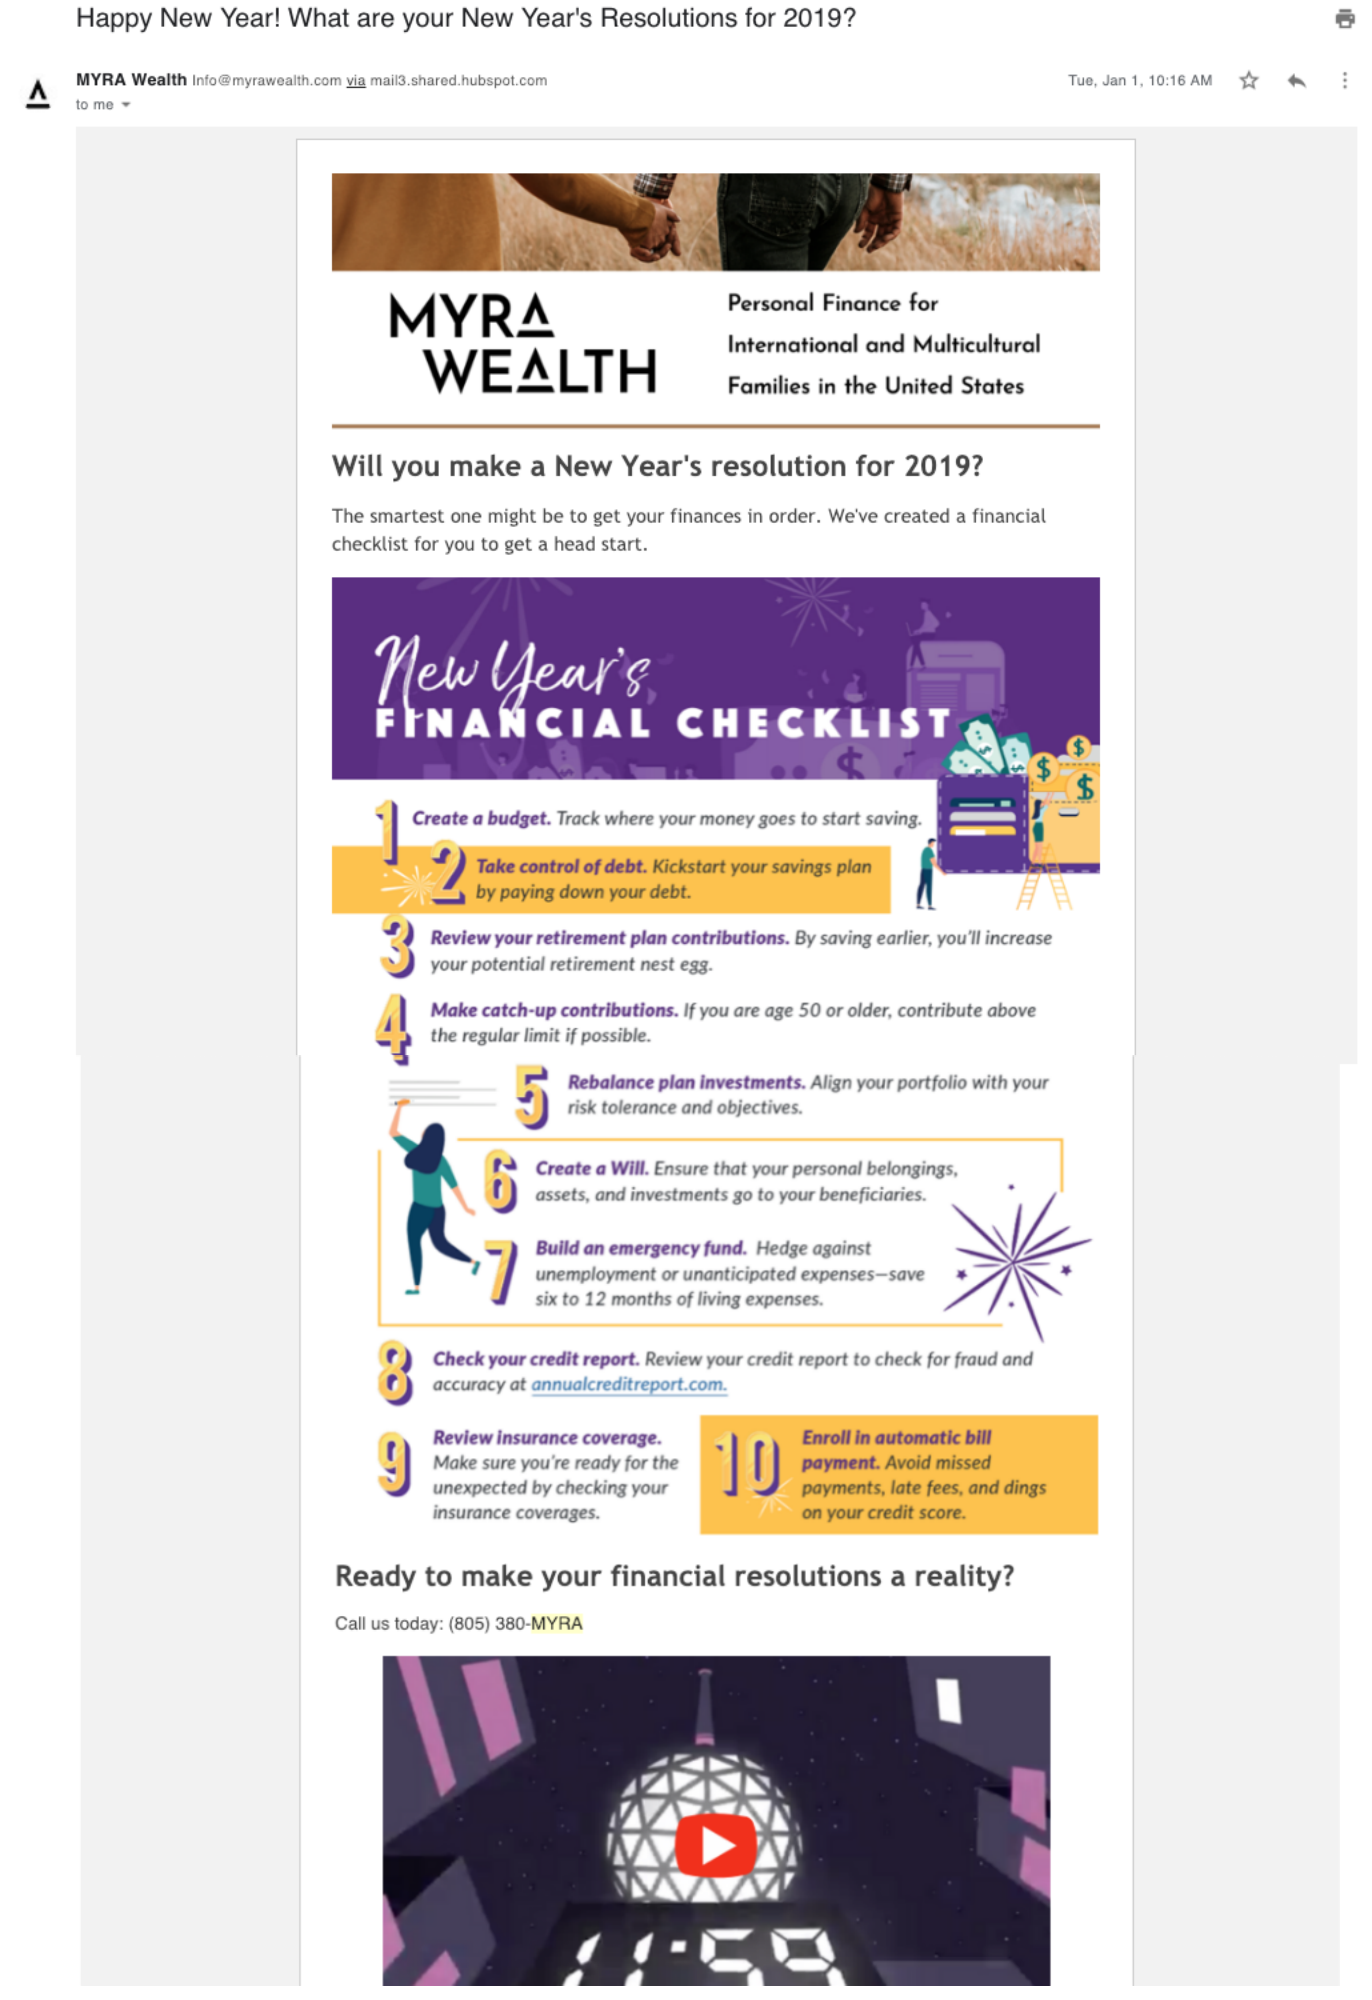 best financial advisor email marketing campaign - myra wealth